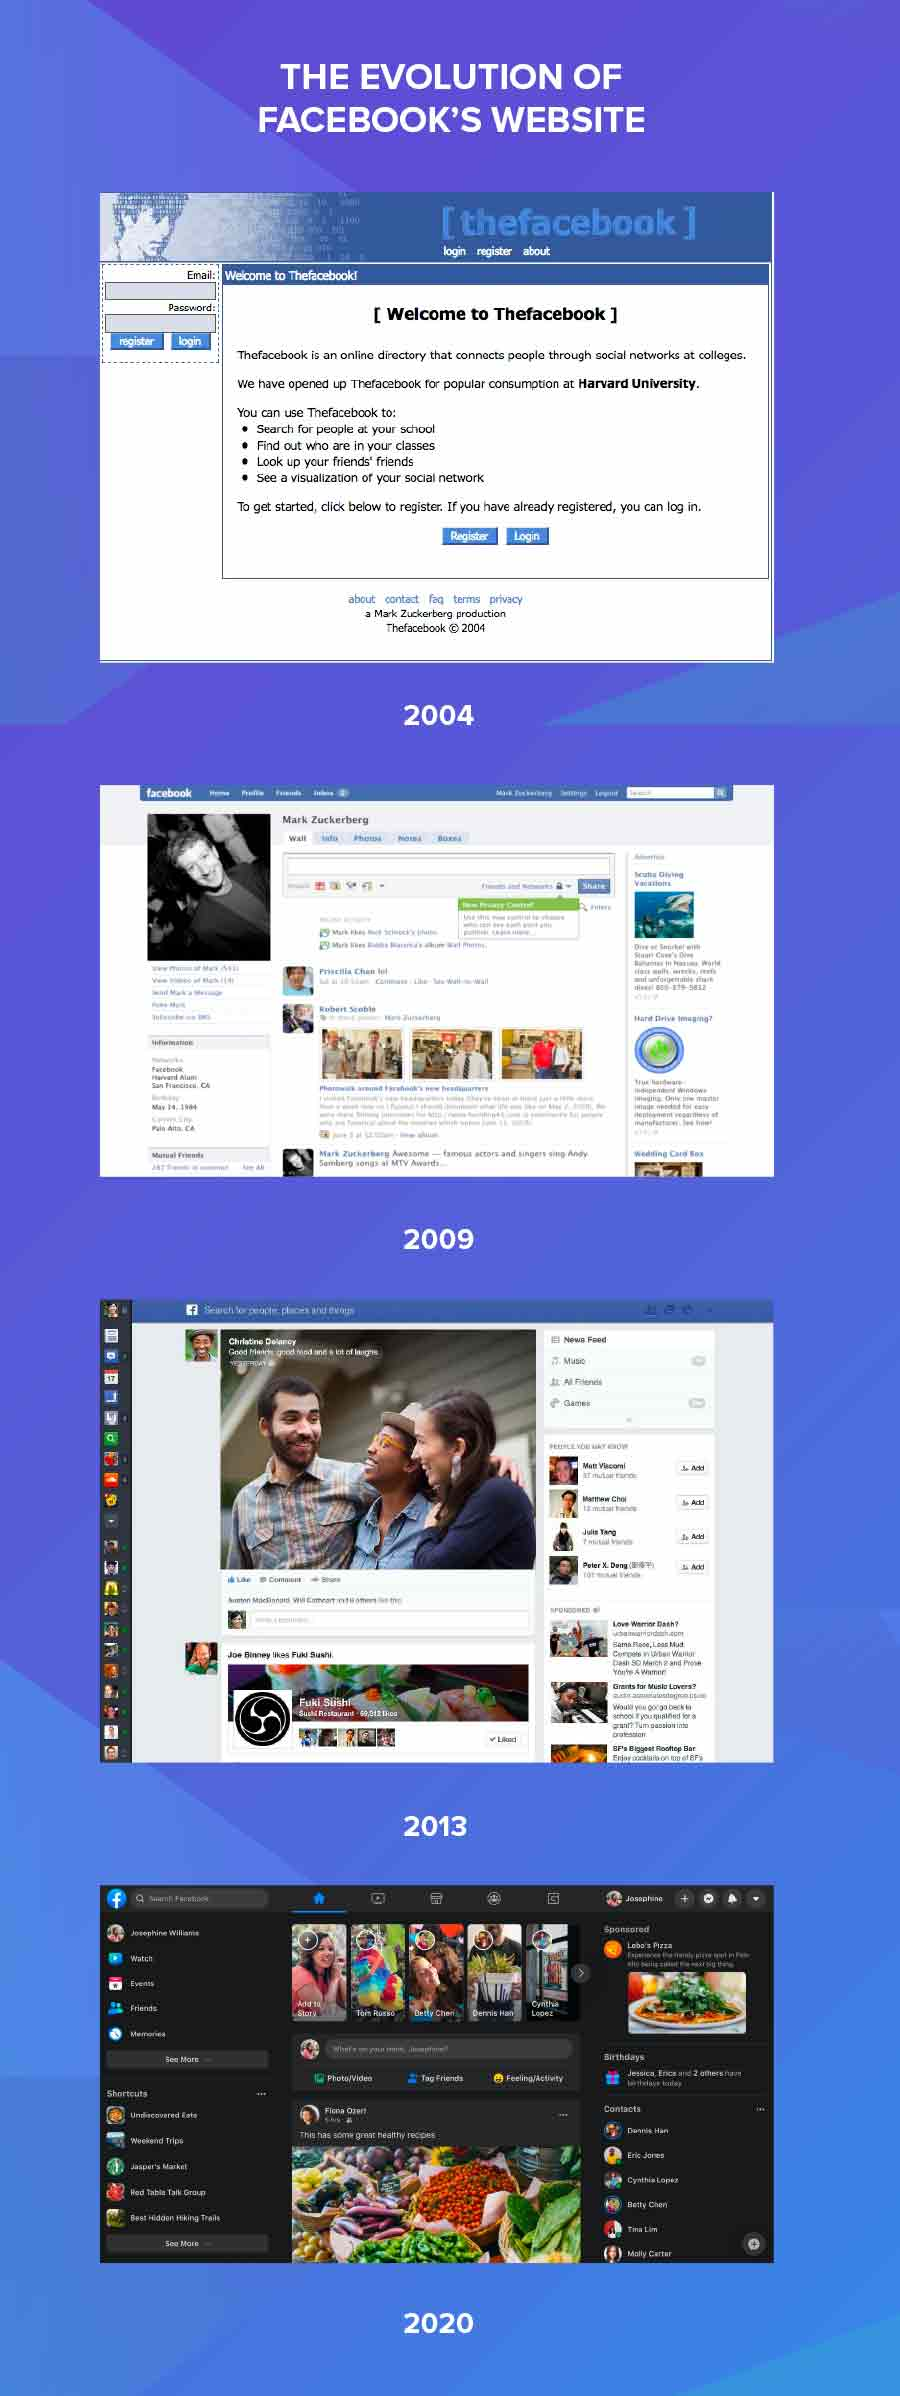 Modern website design: evolution of Facebook's interface